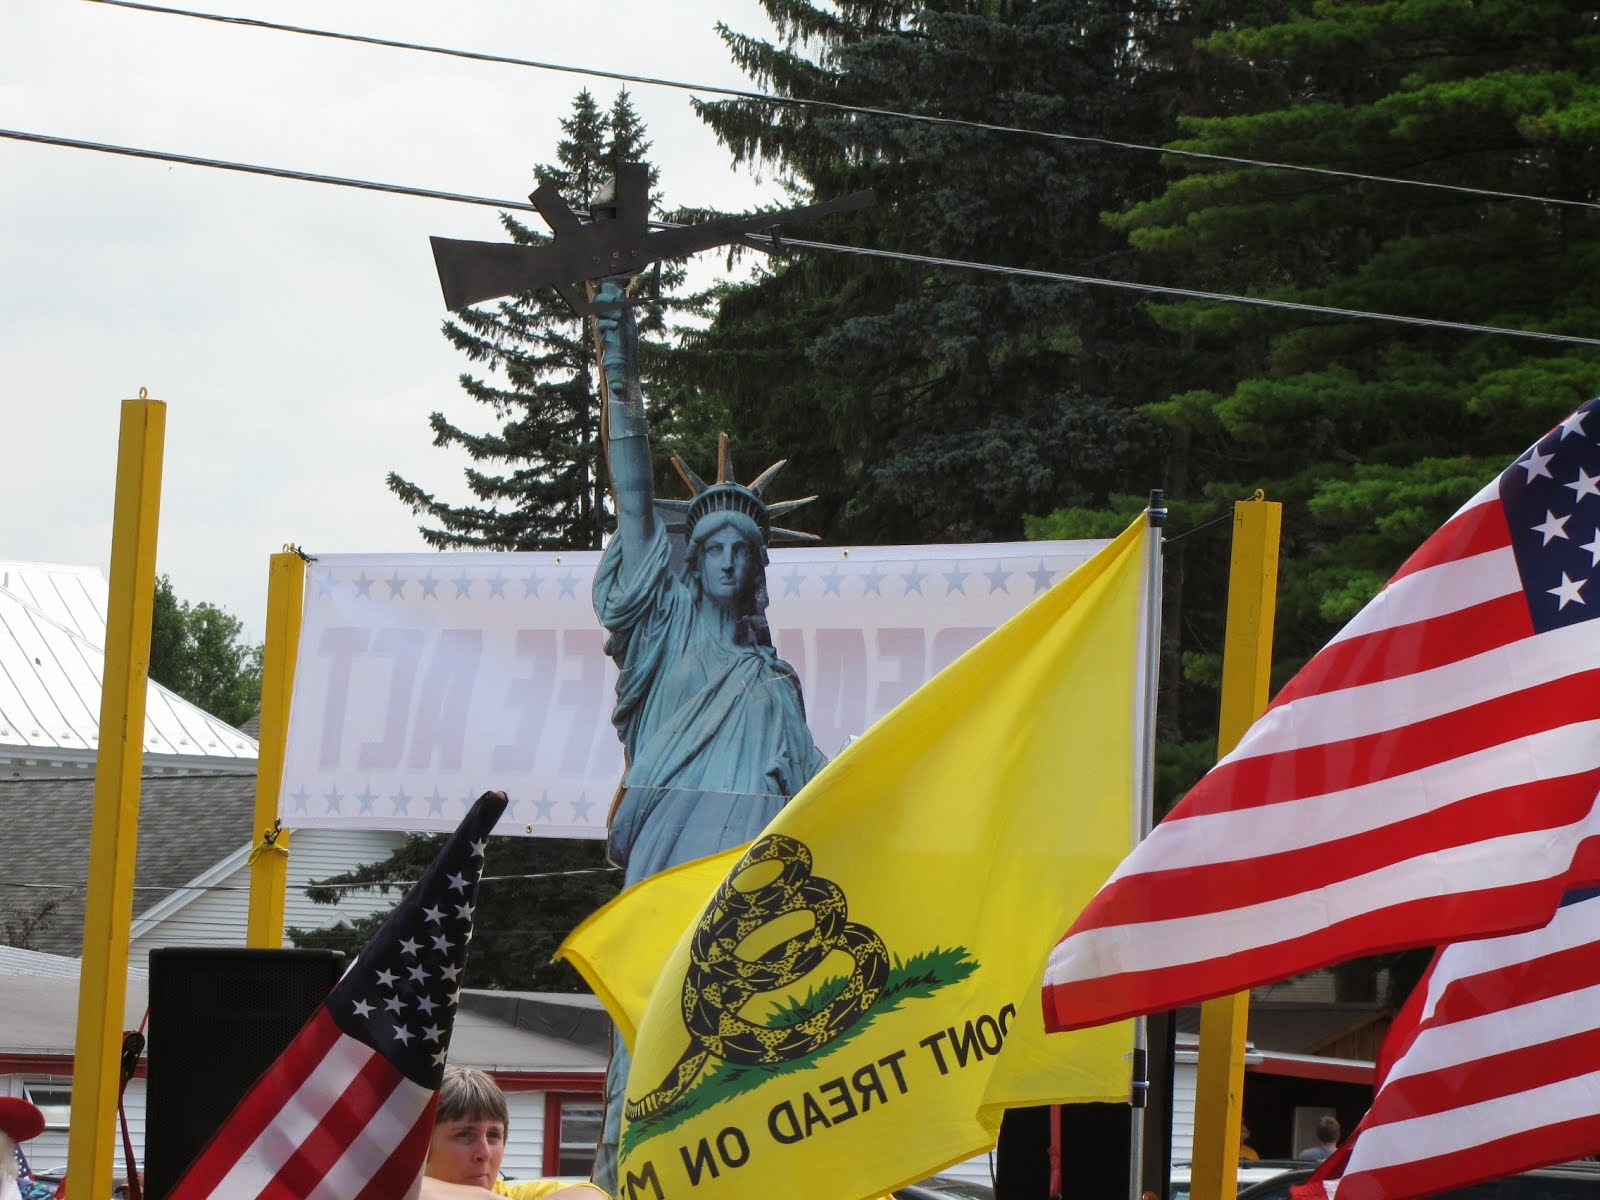 Lady Liberty Holding an Assault Rifle on Anti-SAFE Act Float